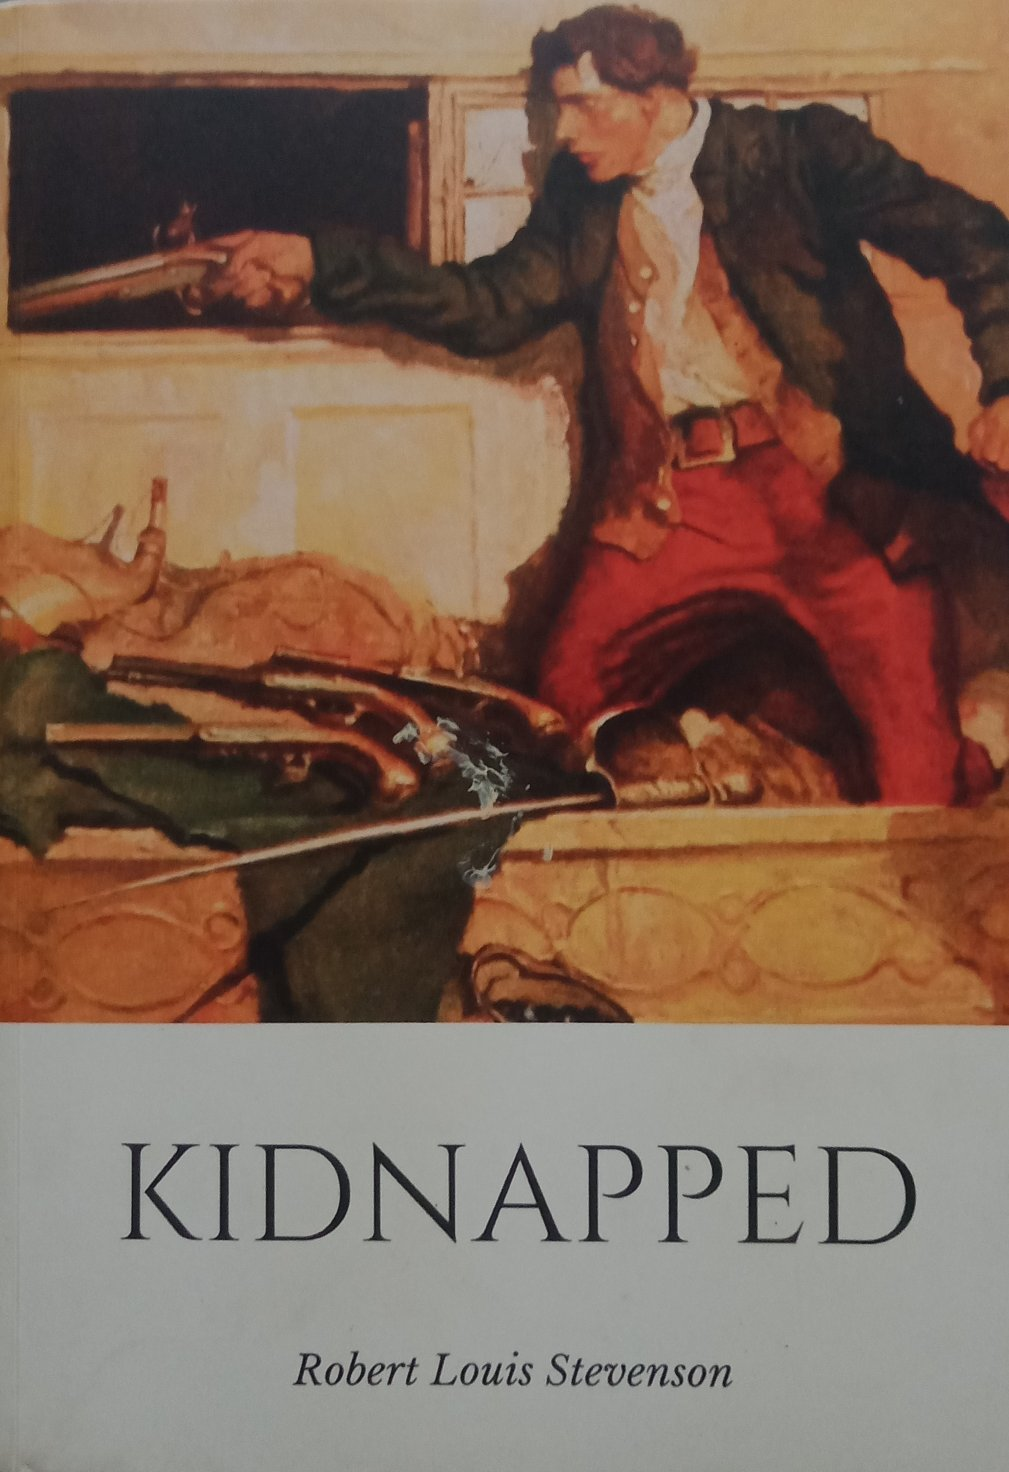 Kidnapped by Robert Louis